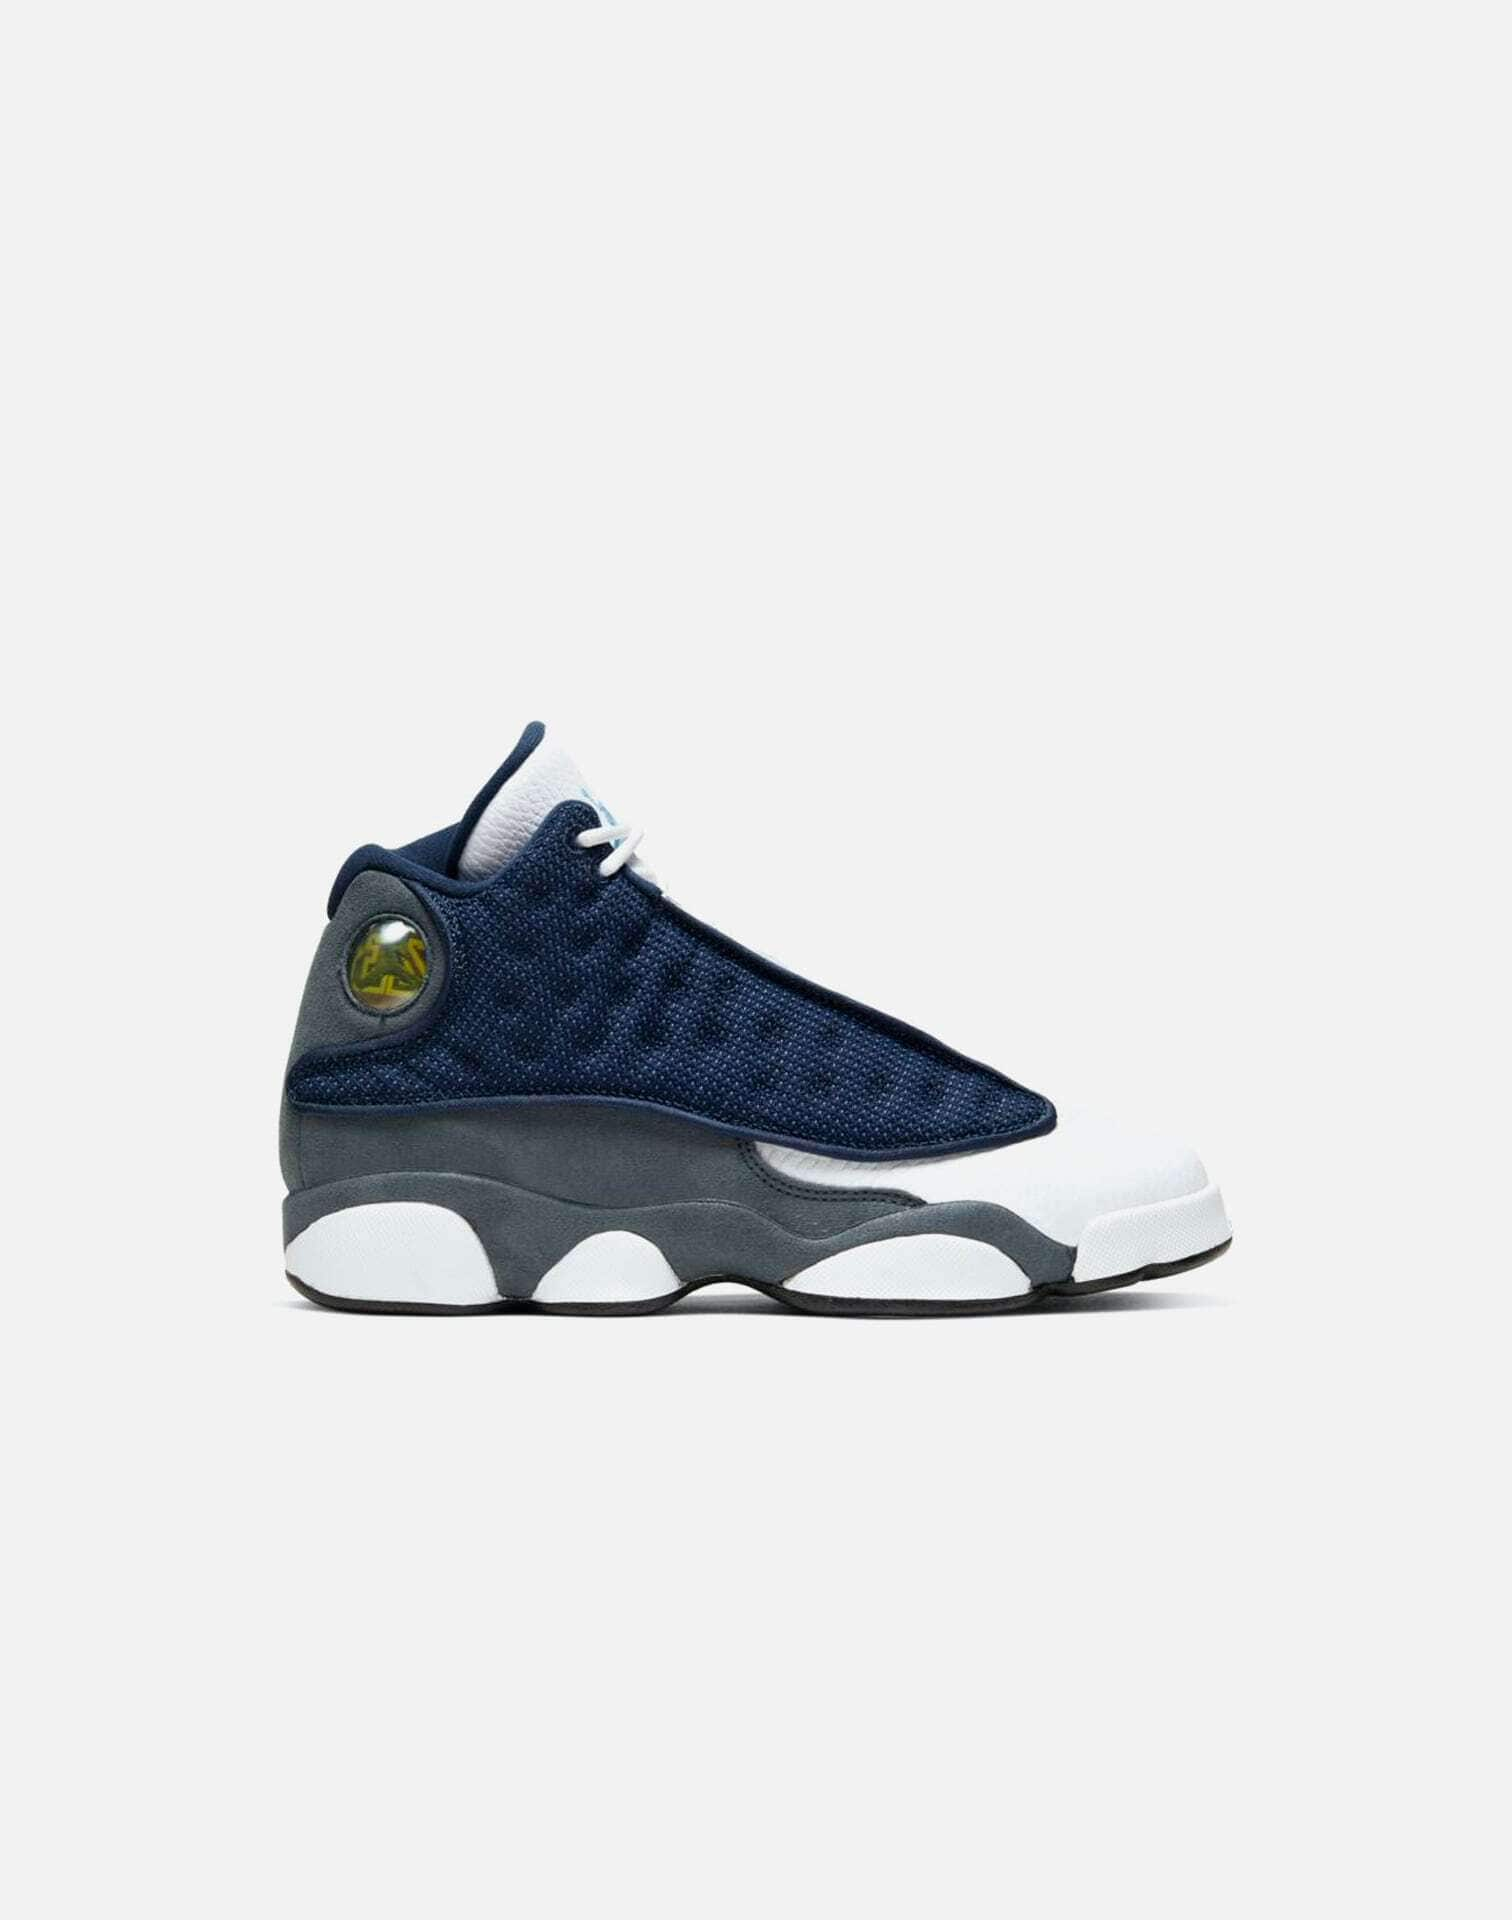 Jordan AIR JORDAN RETRO 13 'FLINT' GRADE-SCHOOL